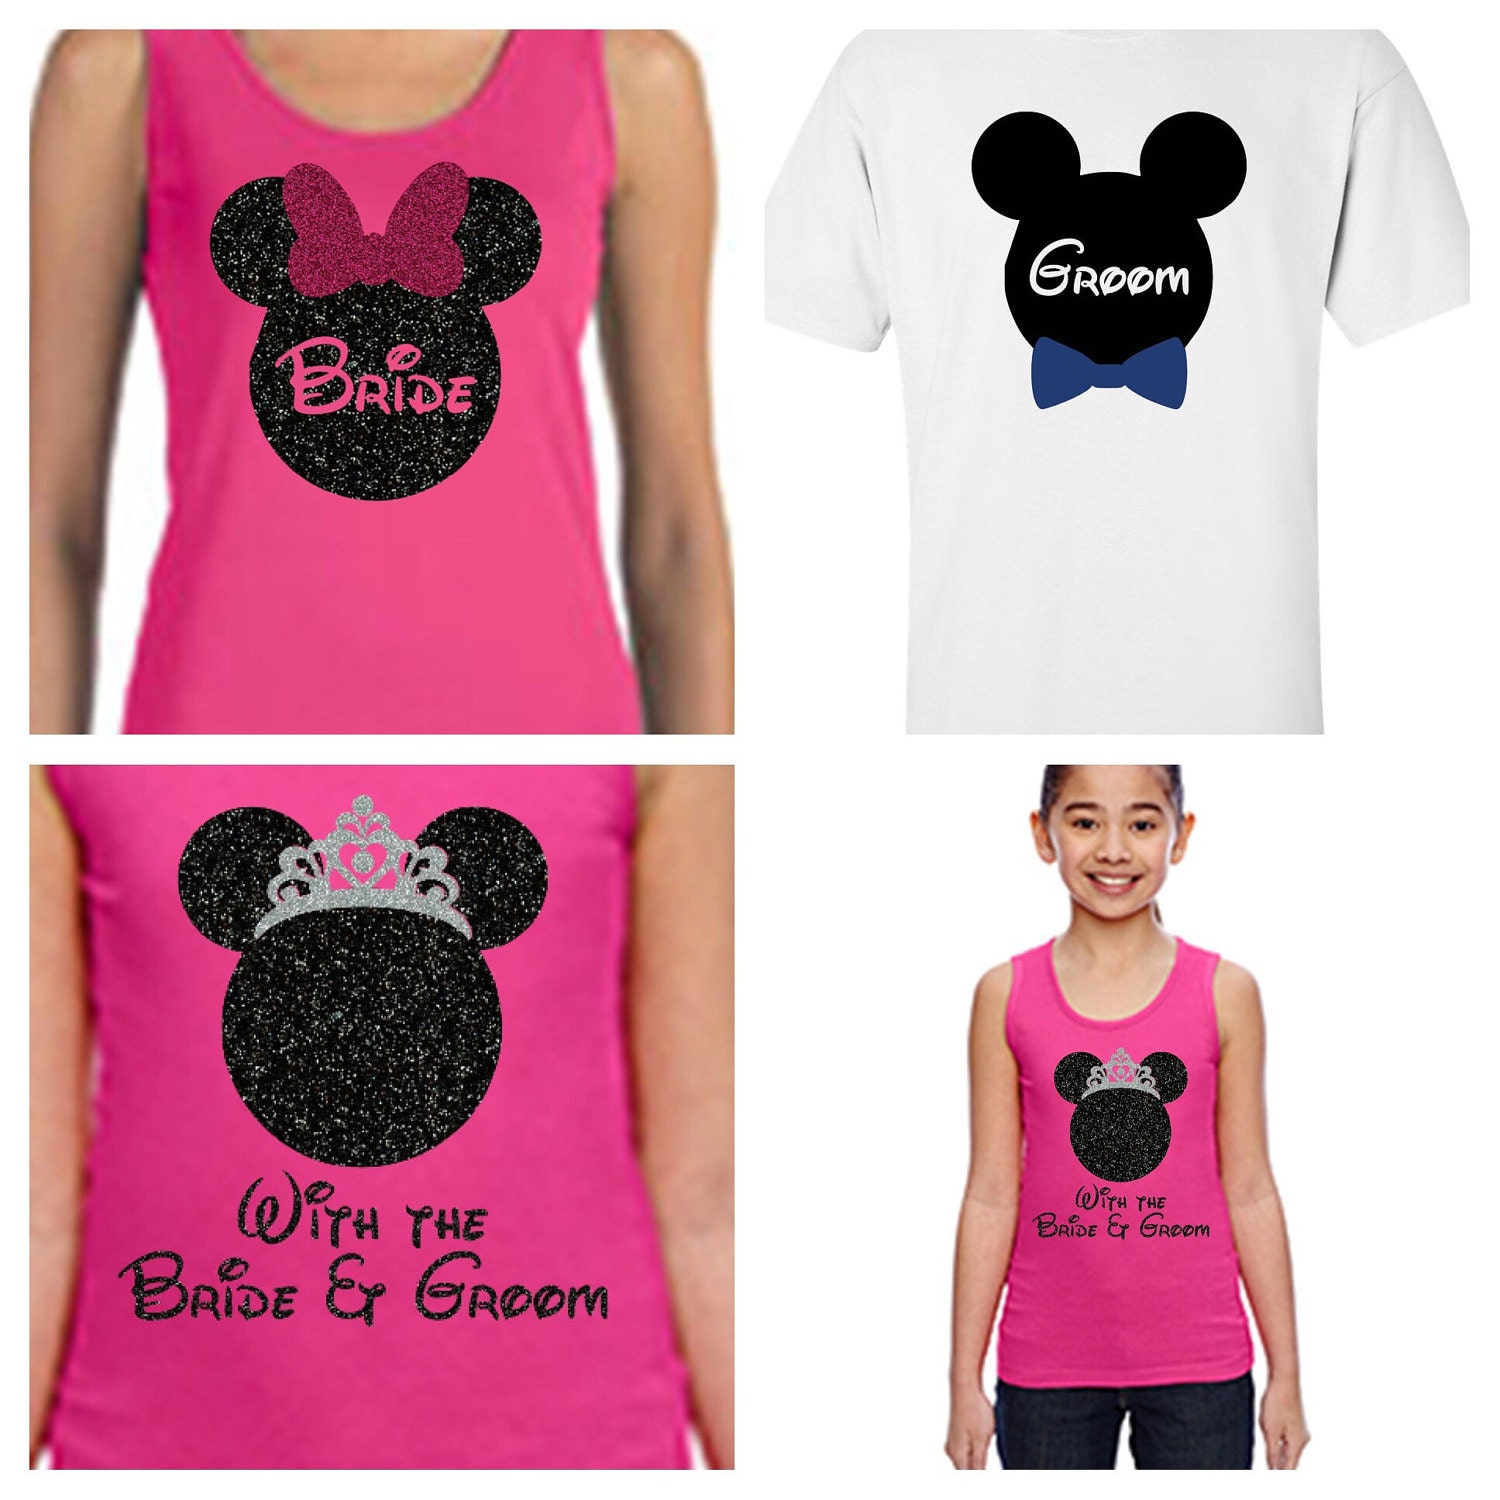 Disney Bride and Groom 4-pack of Tanks and Tshirts. Disney